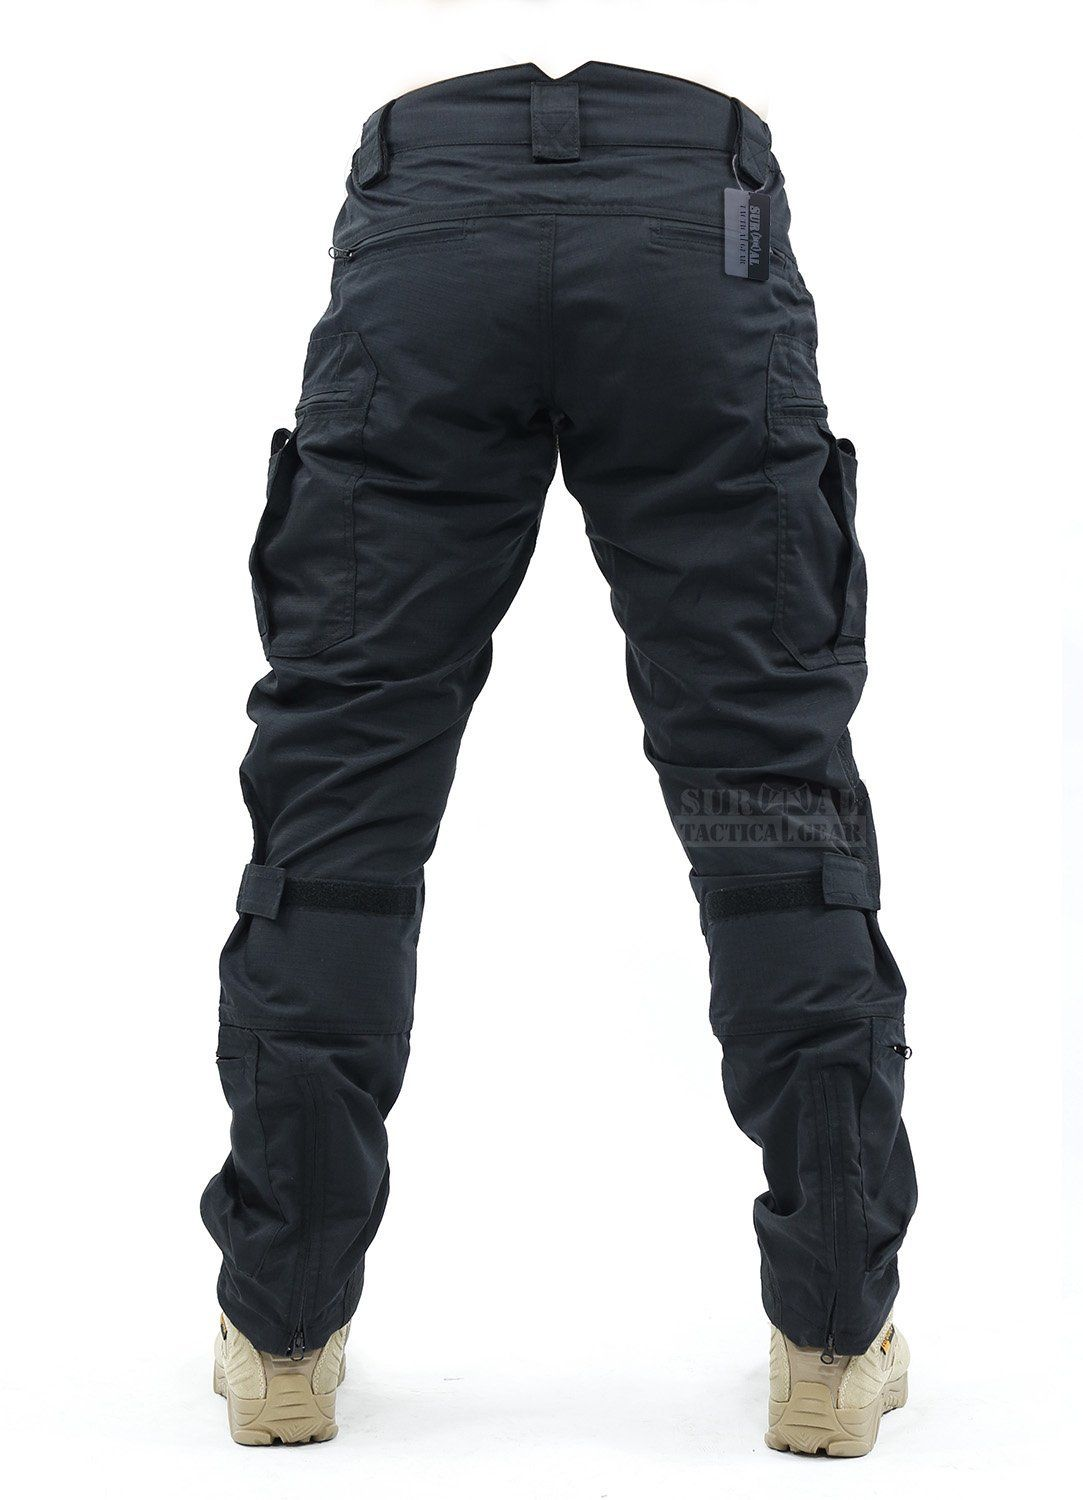 1e67b593 Amazon.com : Survival Tactical Gear Men's Airsoft Wargame Tactical Pants  with Knee Protection System & Air Circulation System (A-TACS AU, ...